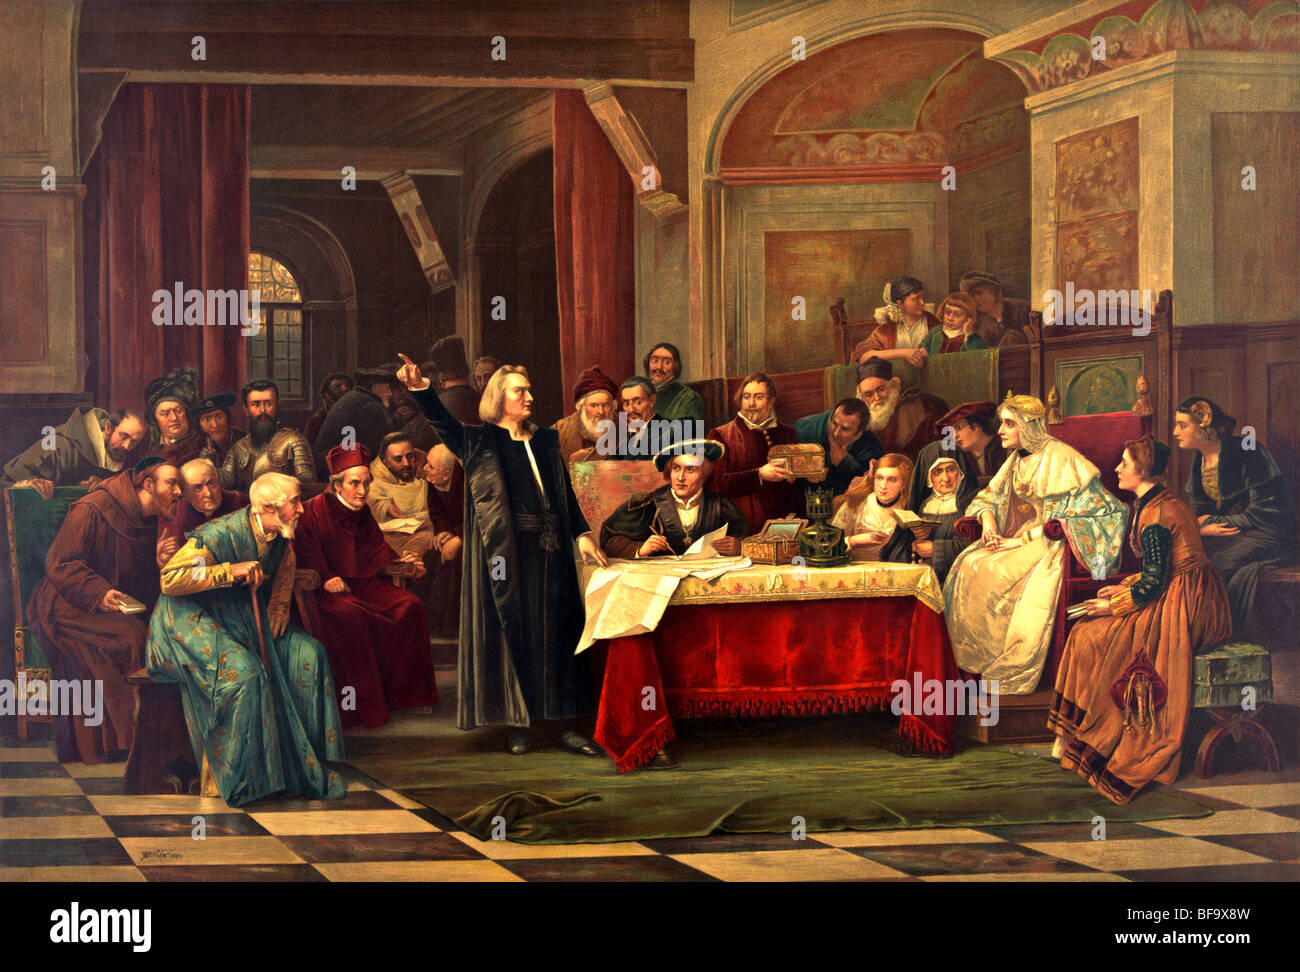 Print c1884 showing Christopher Columbus seeking financial backing from Ferdinand and Isabella at the Royal Court of Spain. Stock Photo